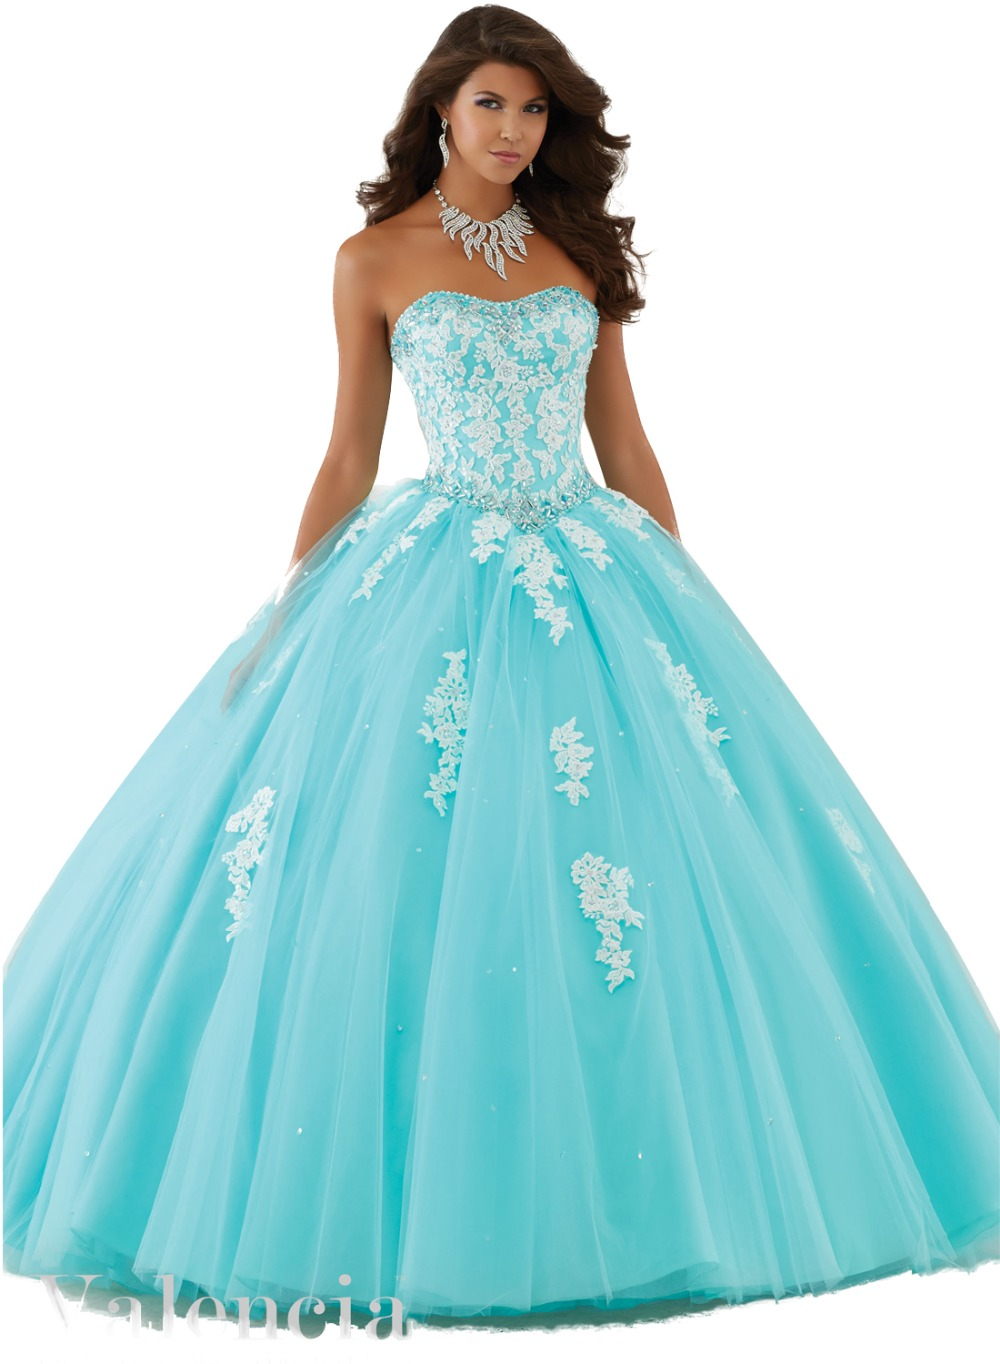 Blue And White Quinceanera Dresses | Dress Wallpaper